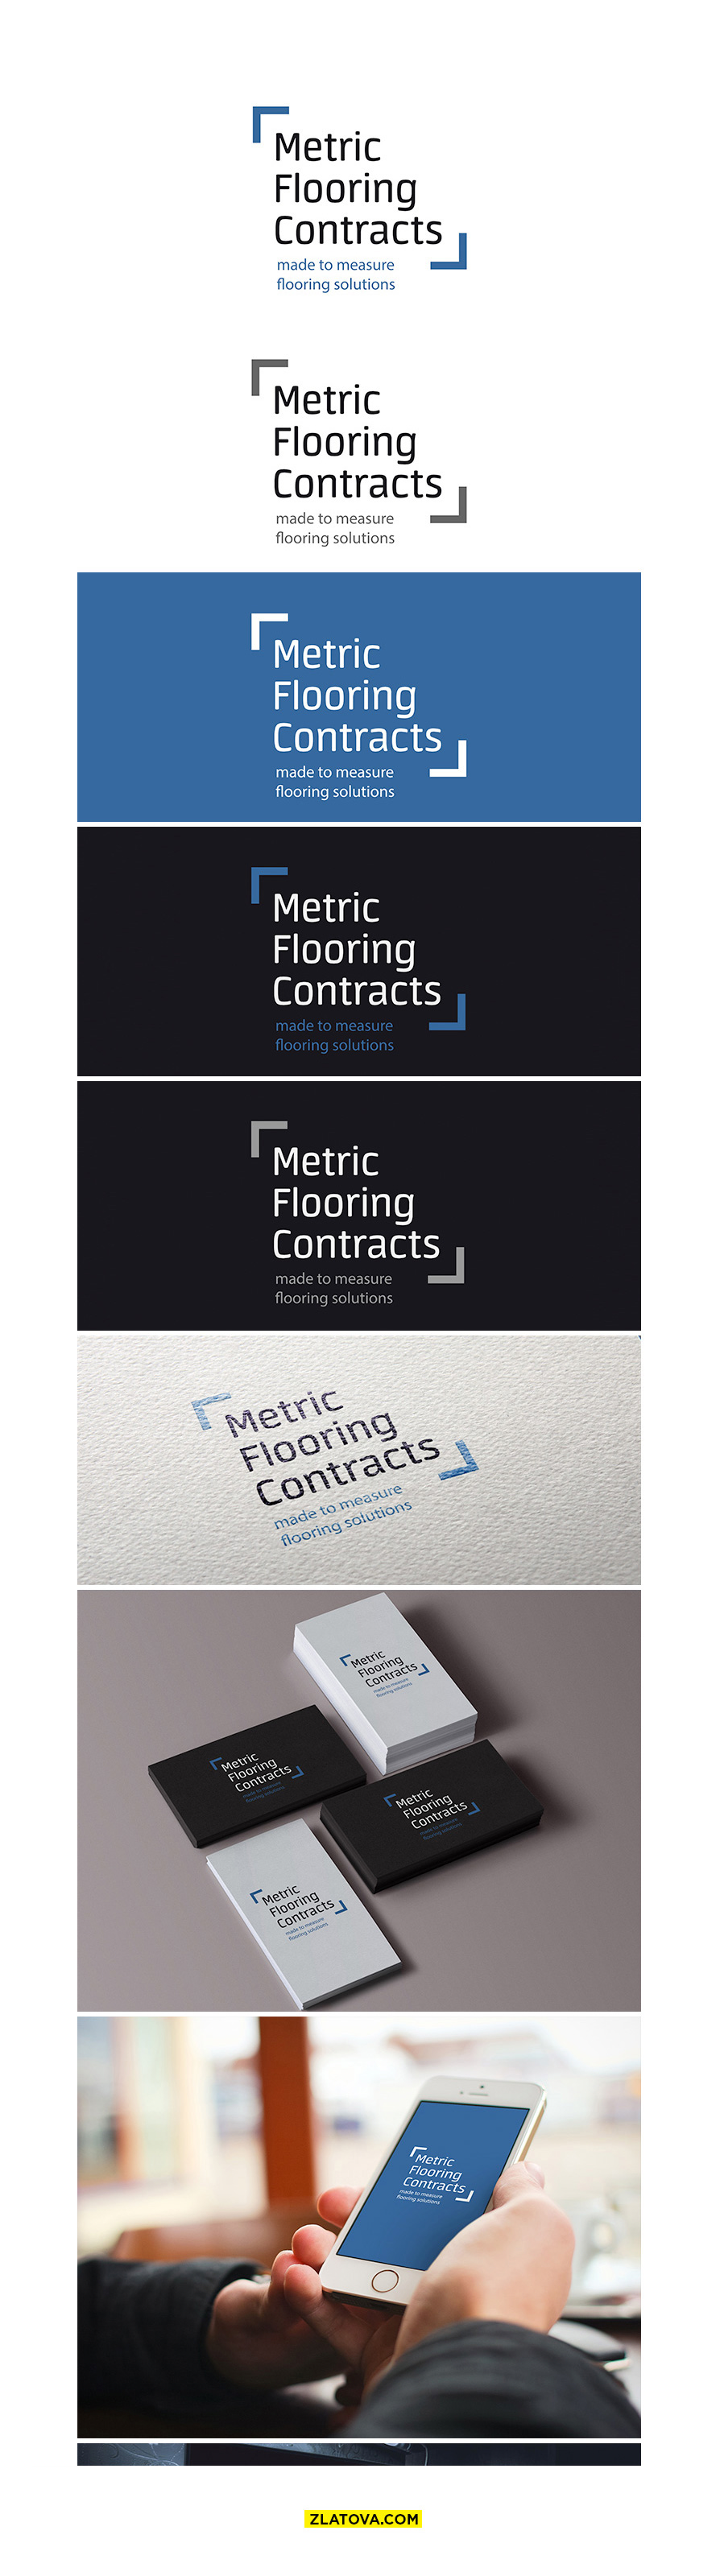 Metric Flooring Contracts